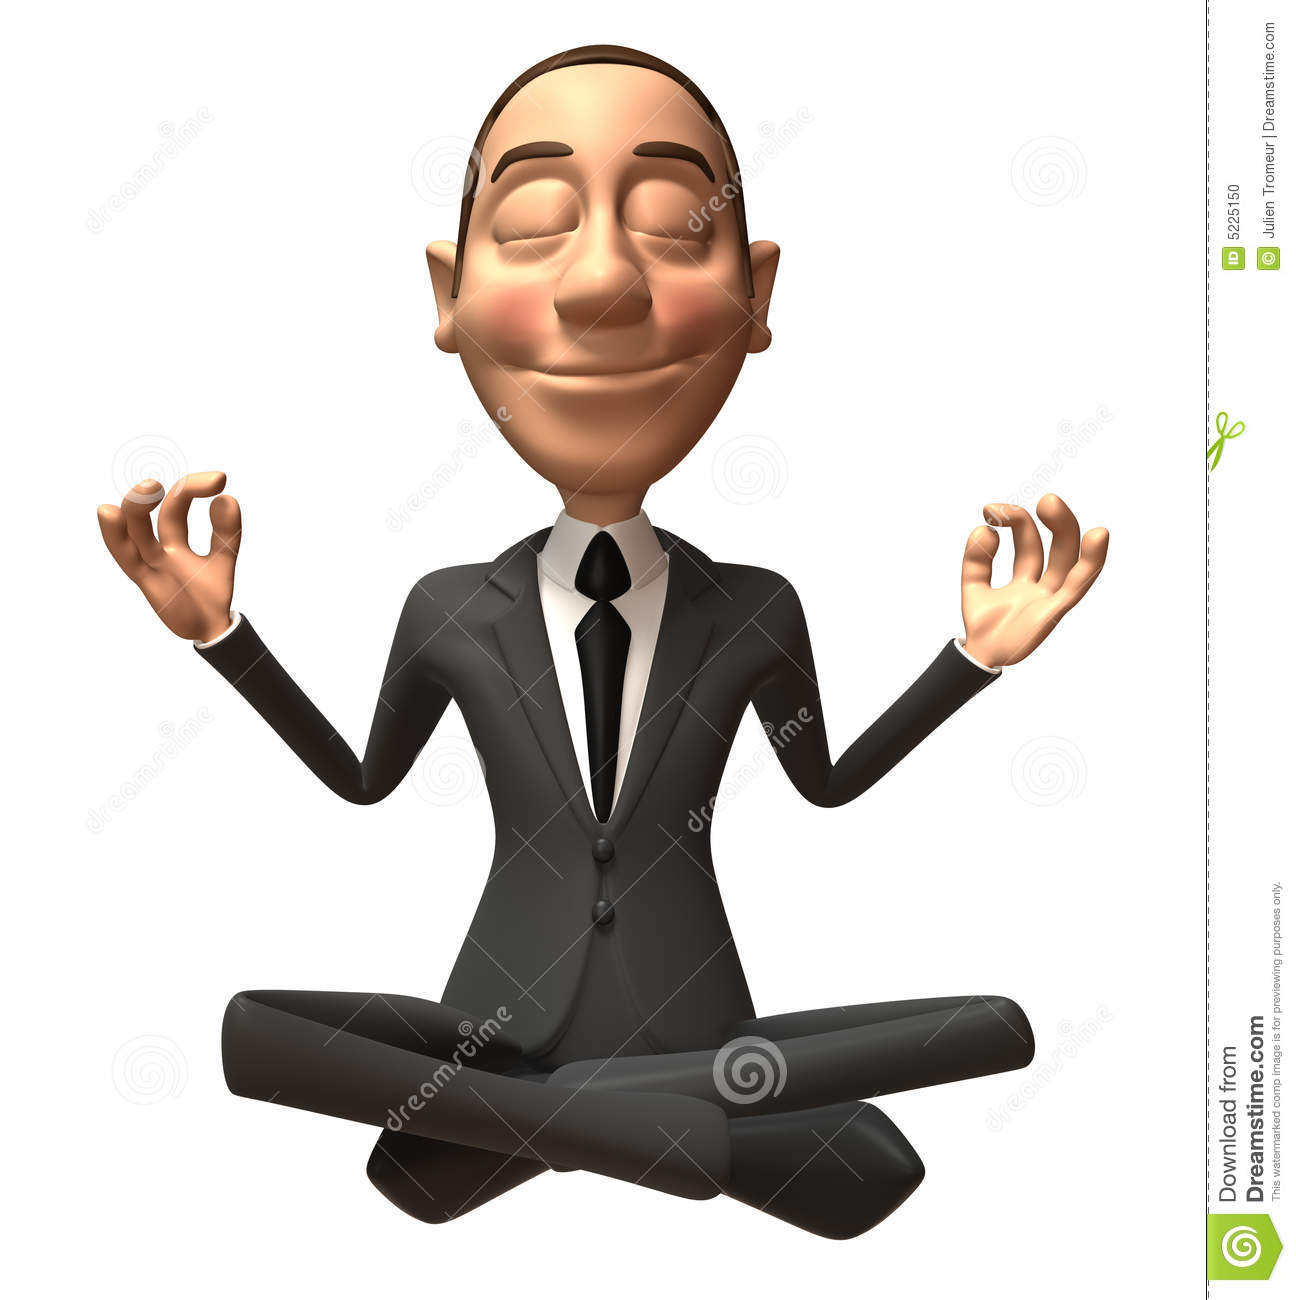 Calm people clipart.